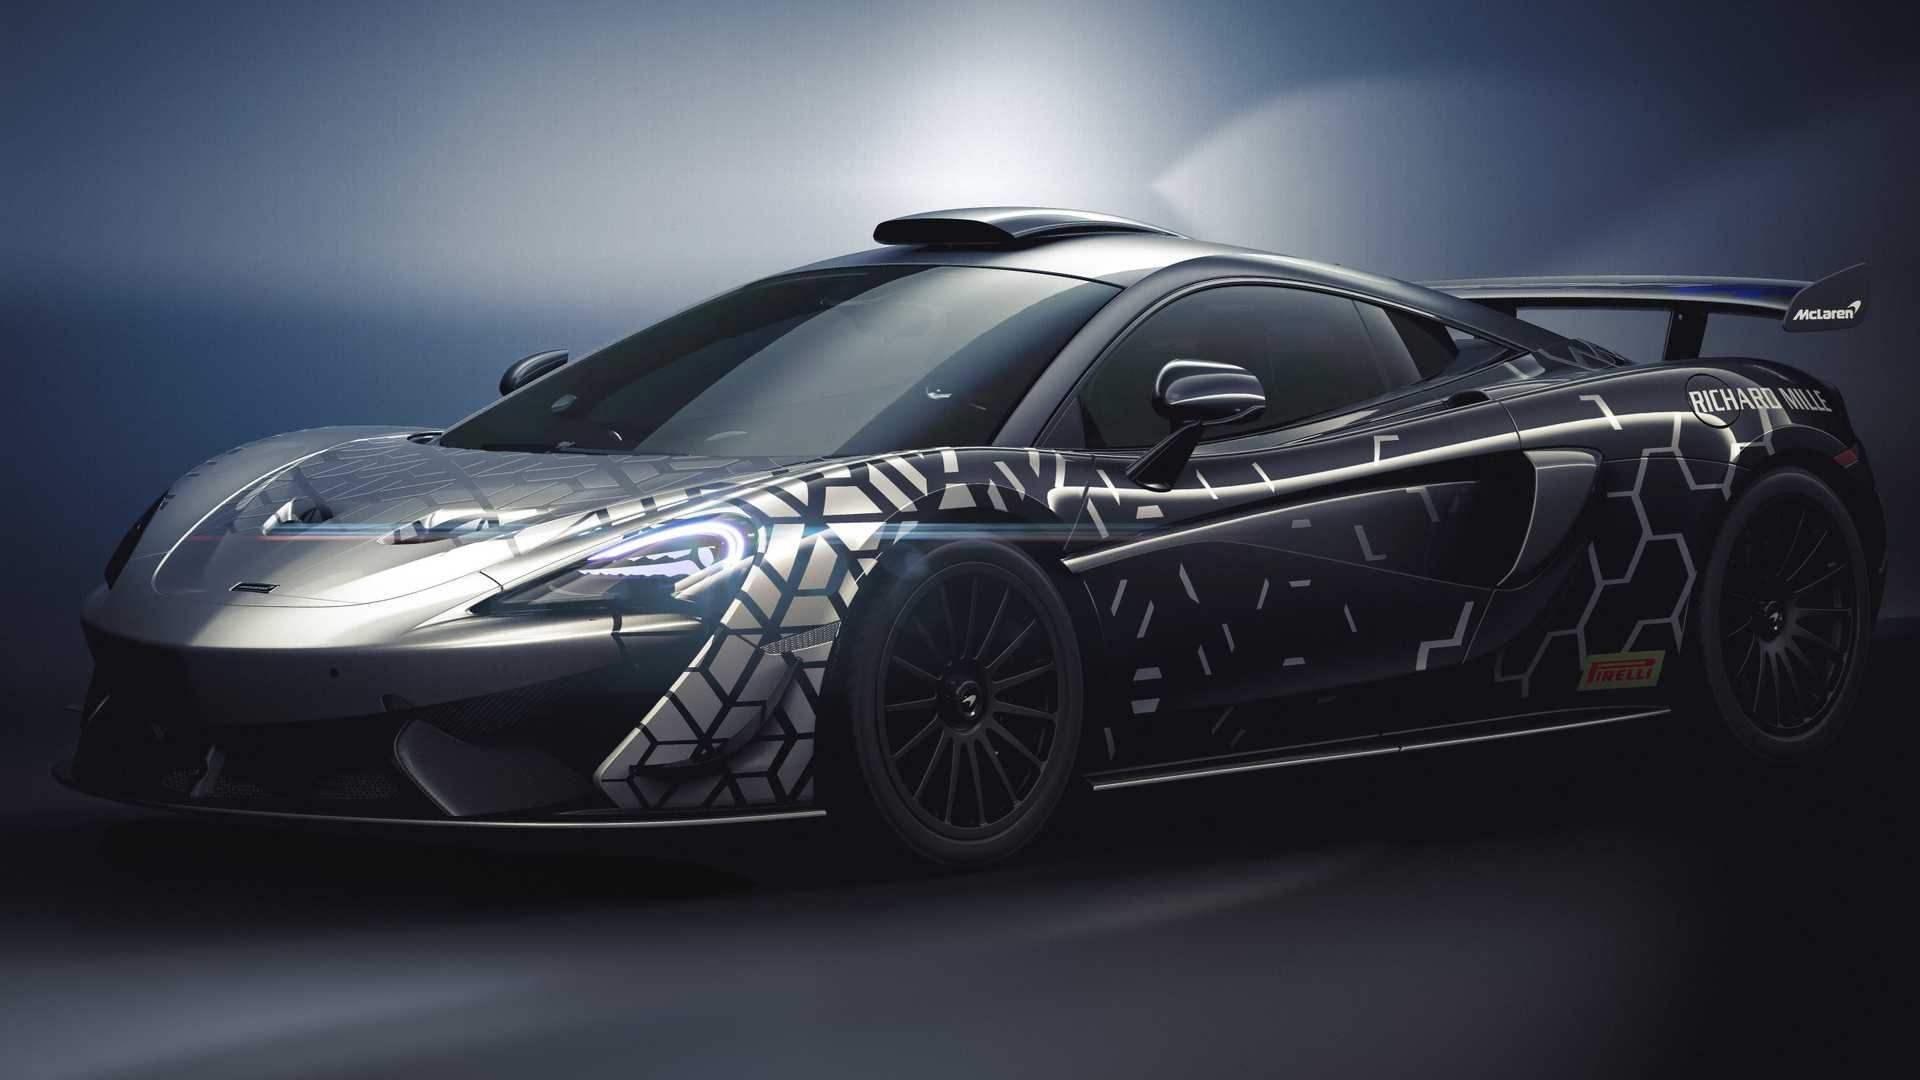 McLaren 620R Revealed As Limited Edition Race Car For The Road 1920x1080